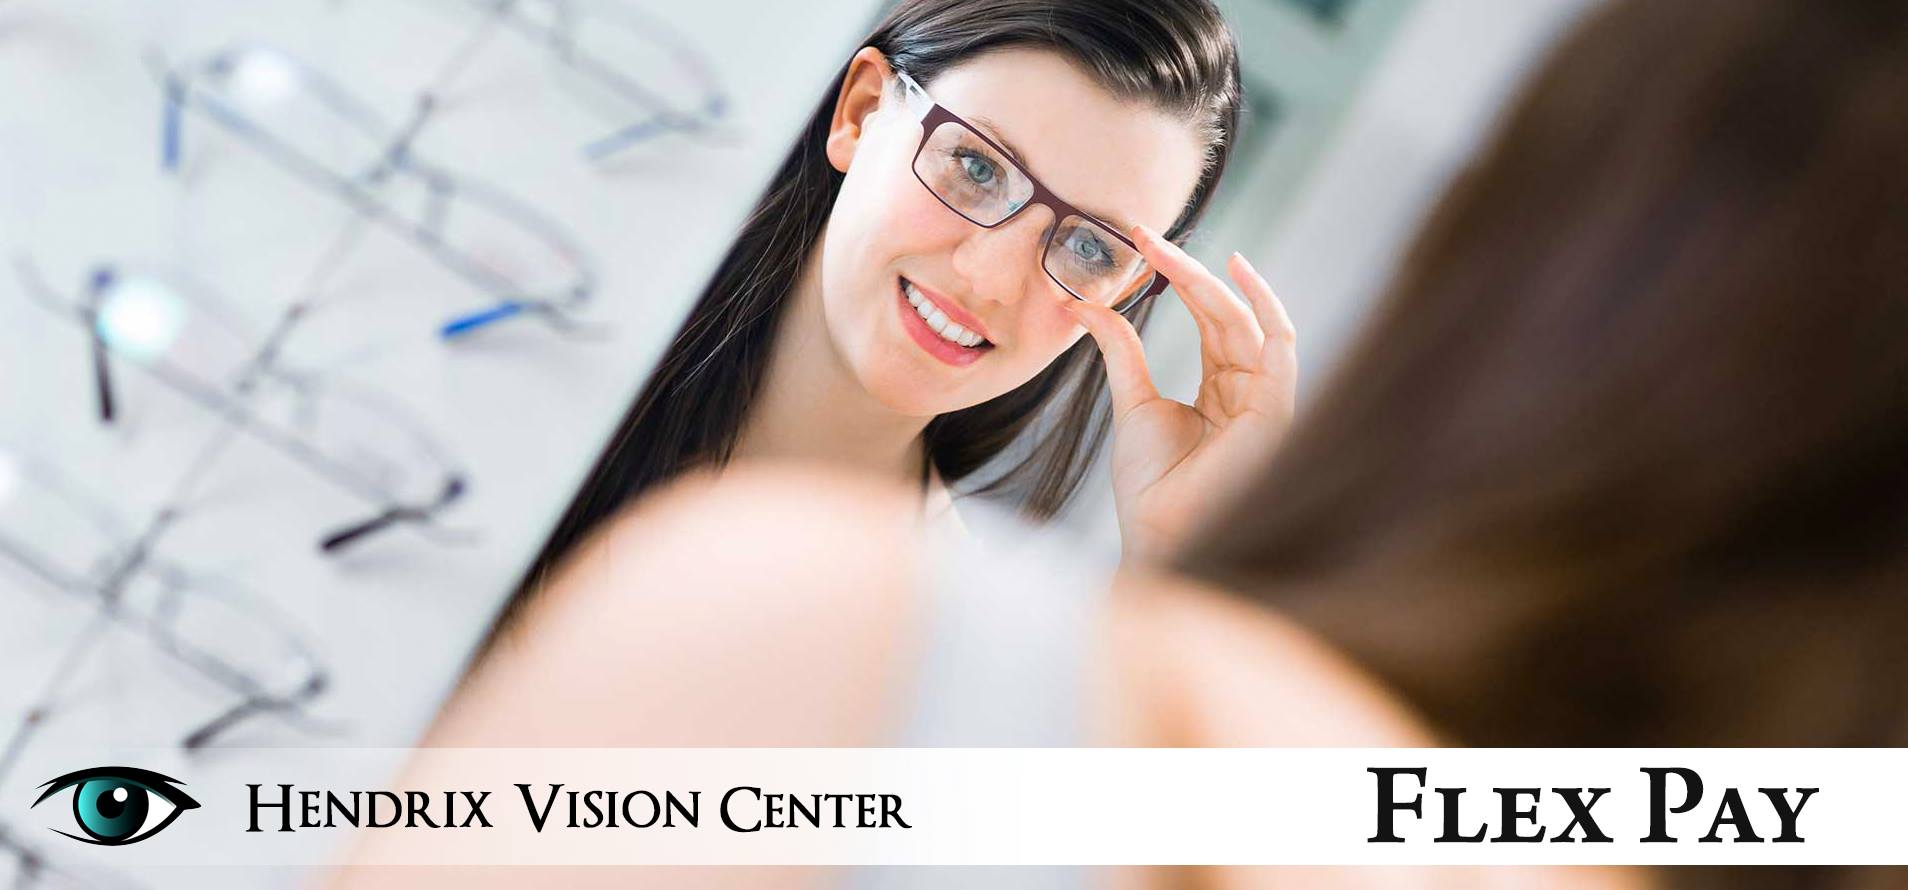 Hendrix Vision Center Flex Pay